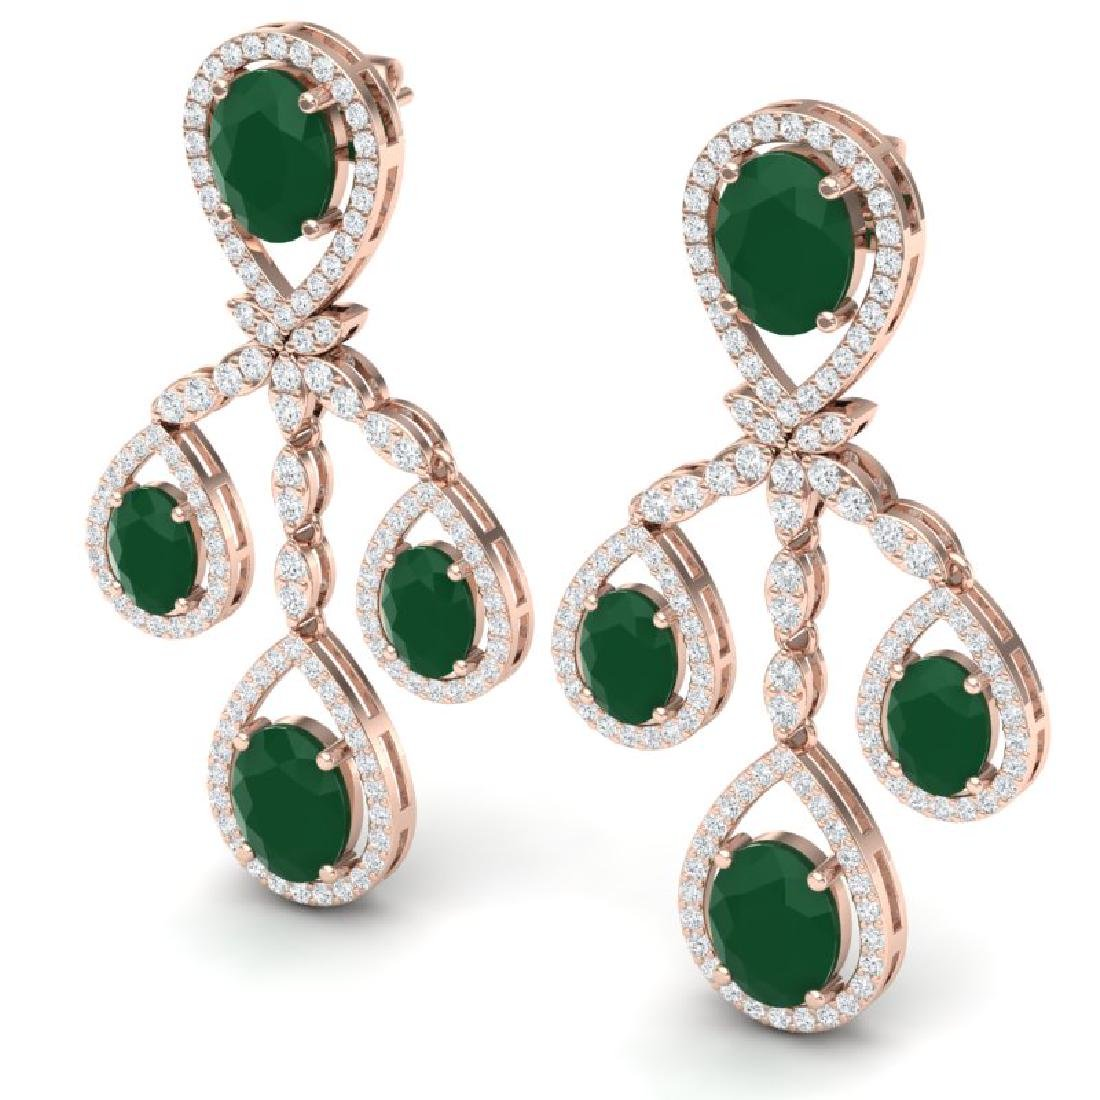 25.08 CTW Royalty Emerald & VS Diamond Earrings 18K - 2